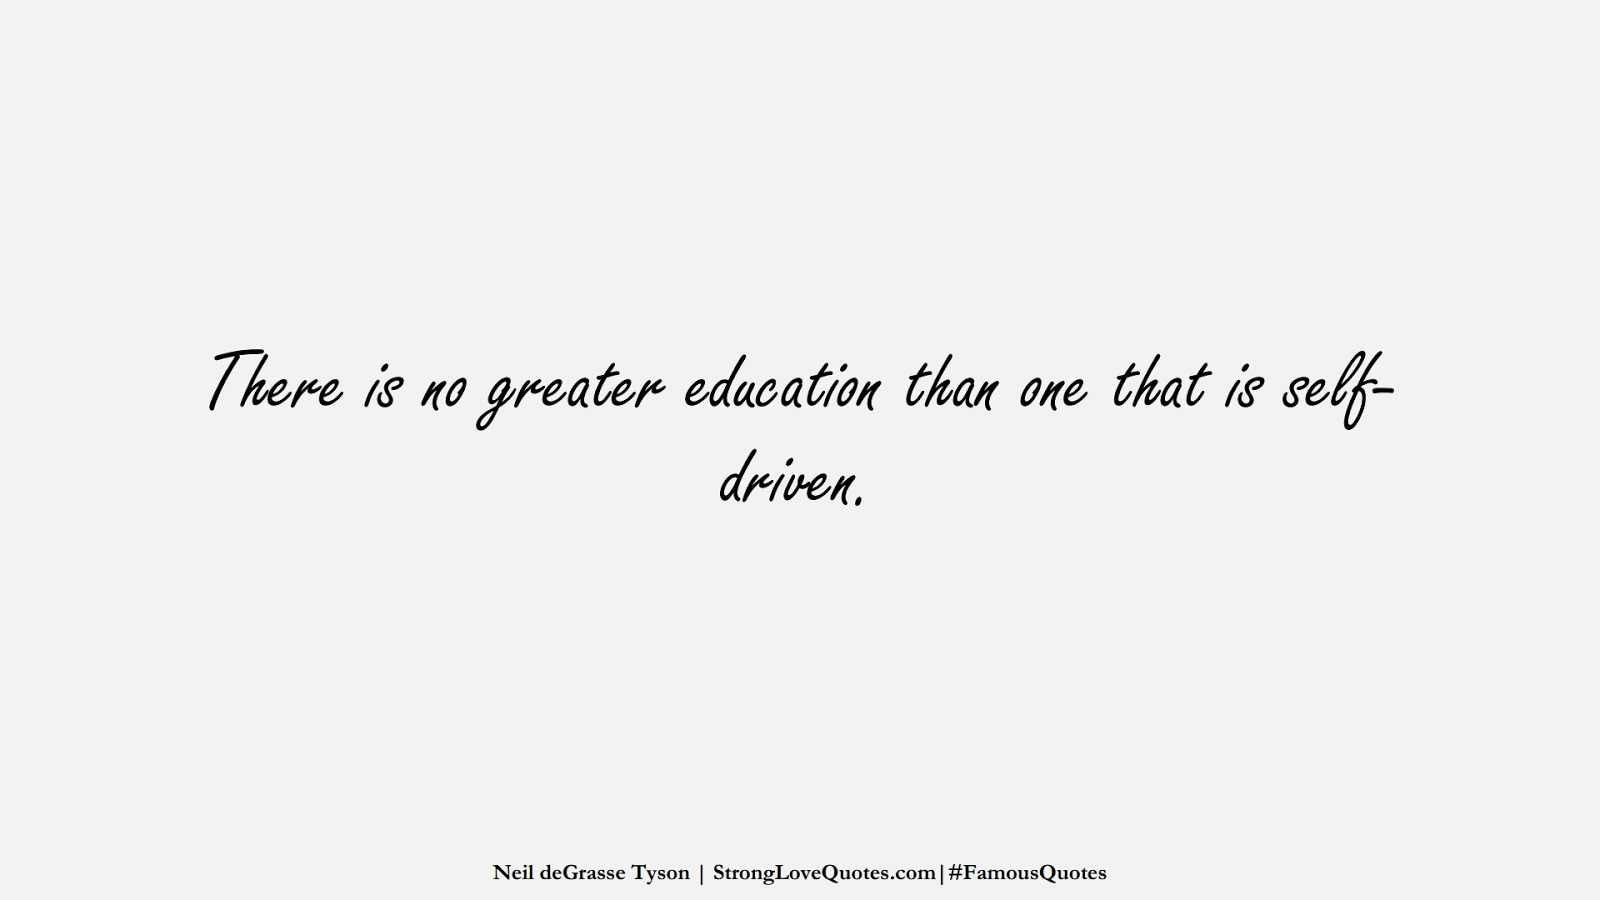 There is no greater education than one that is self-driven. (Neil deGrasse Tyson);  #FamousQuotes